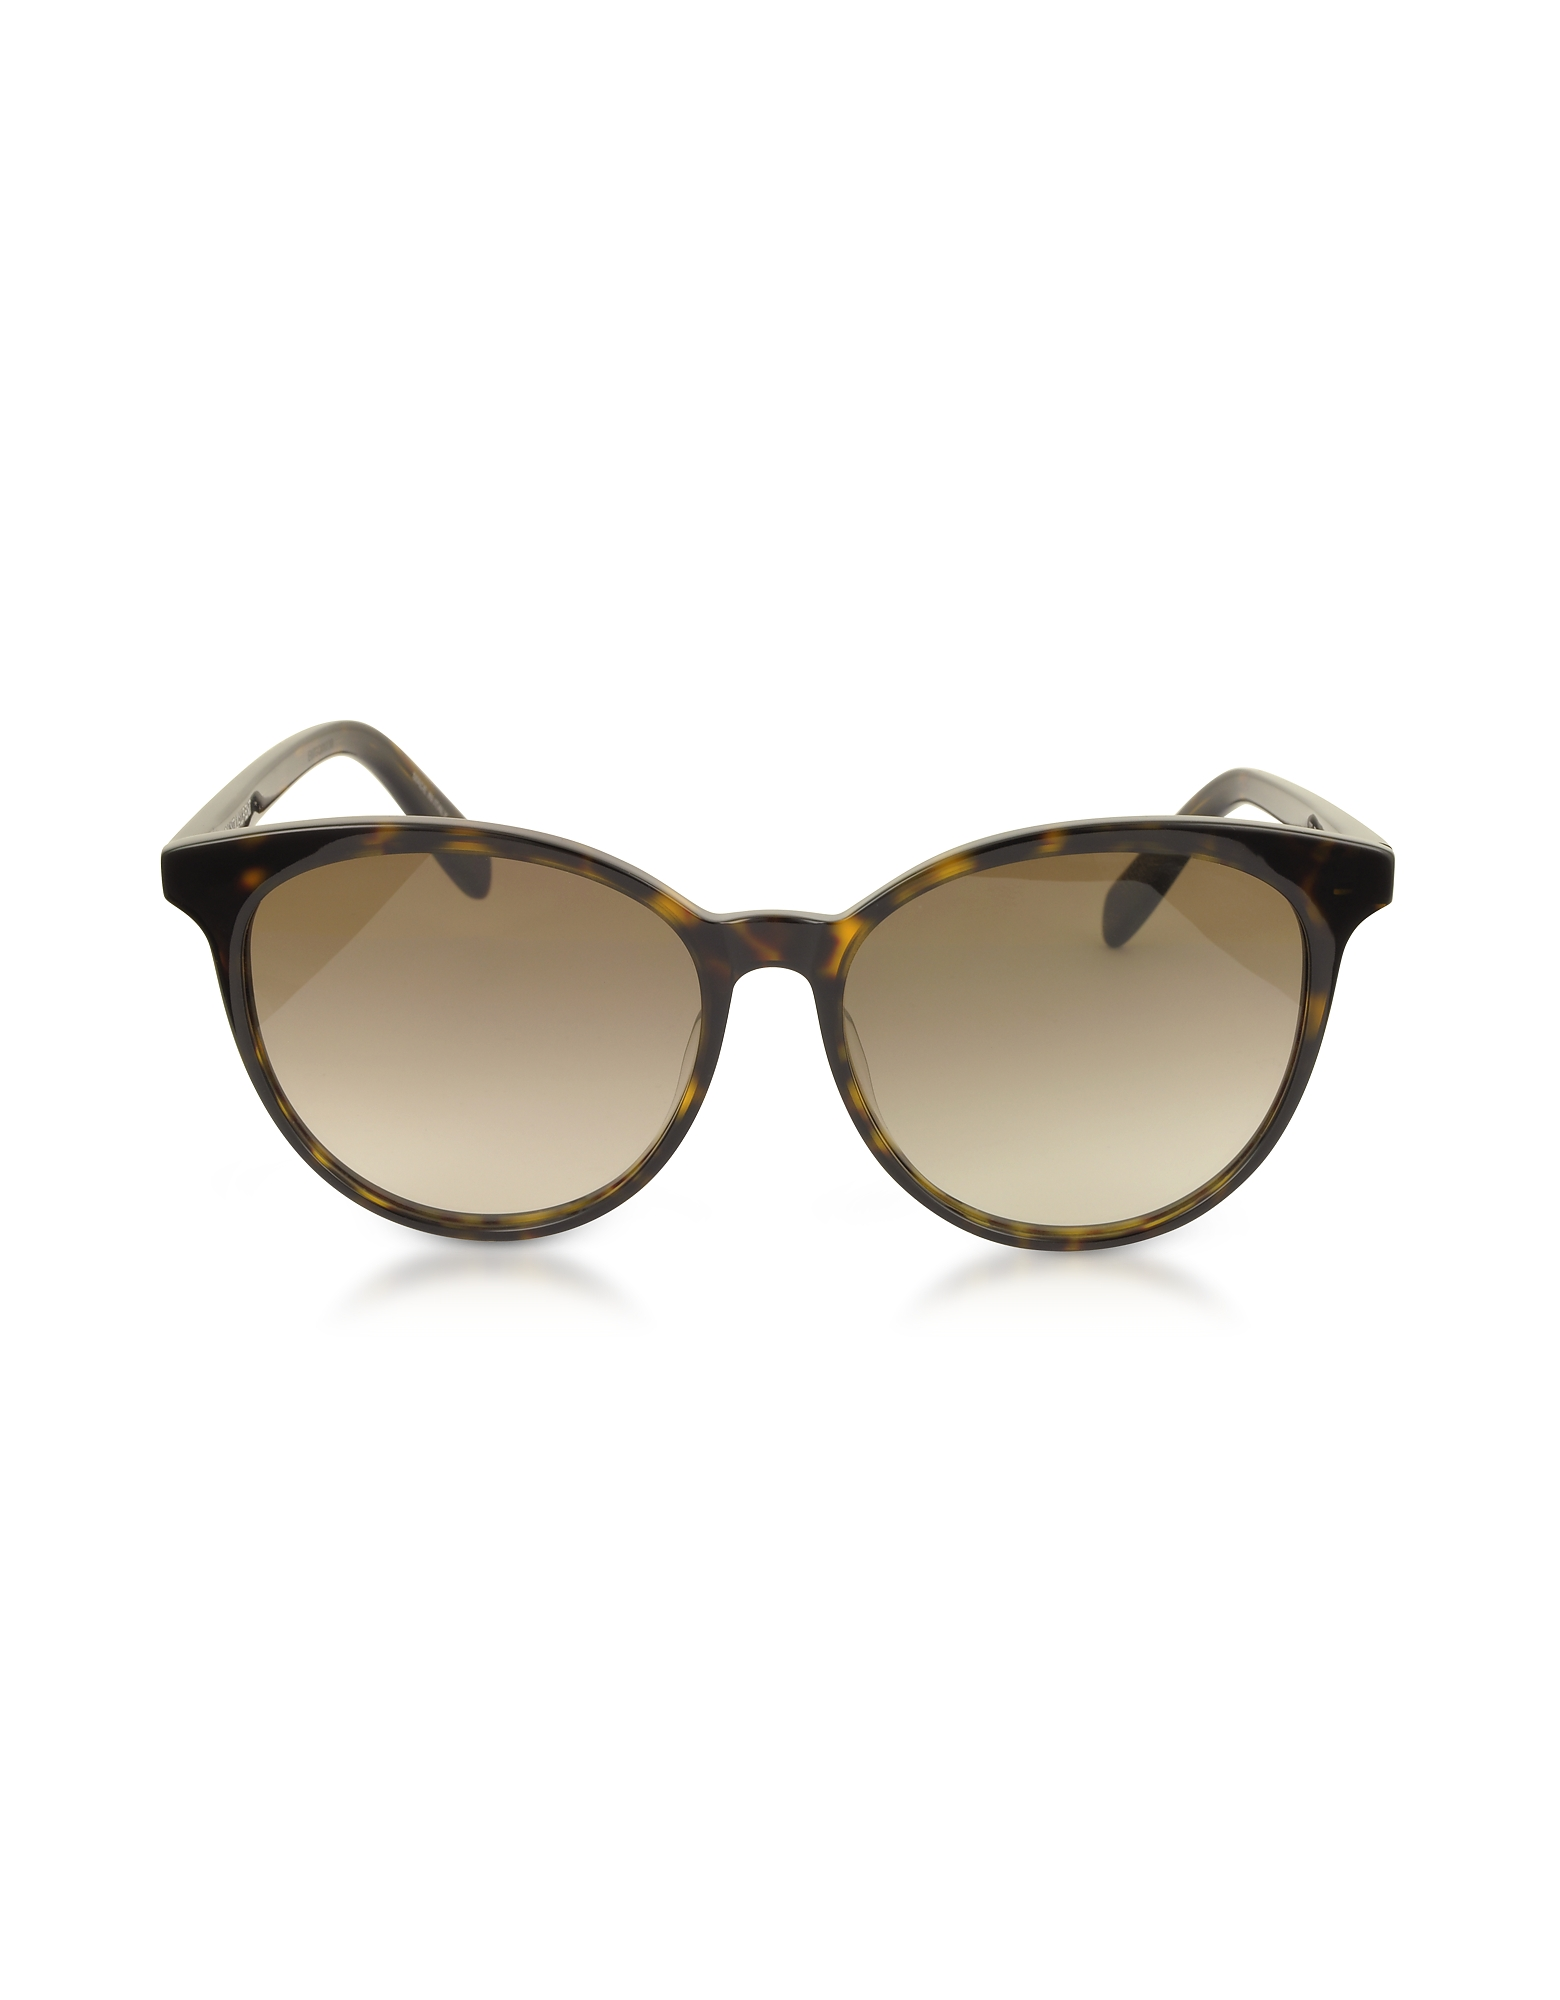 Saint Laurent Designer Sunglasses, SL204 K Acetate Oval Frame Women Sunglasses